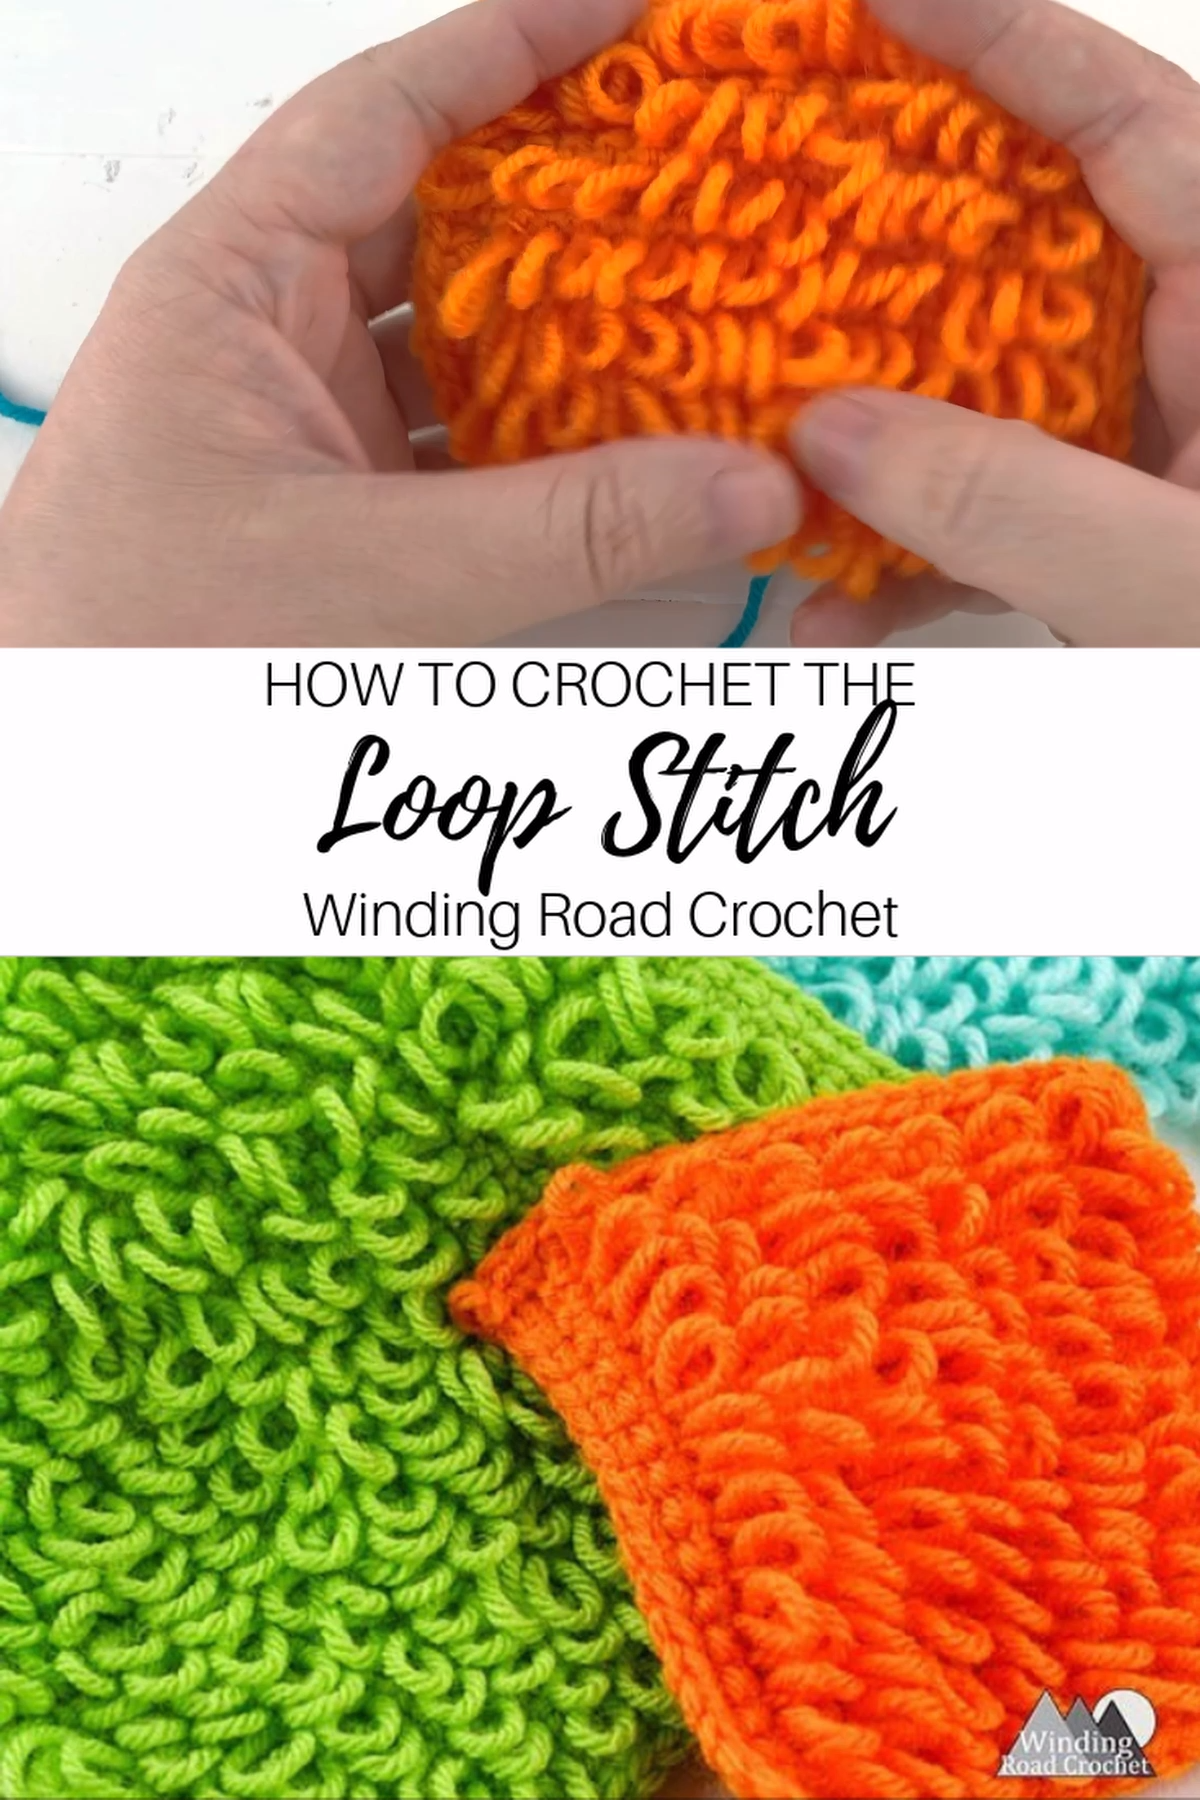 Crochet Loop Stitch Video Tutorial by Winding Road Crochet – Örgü